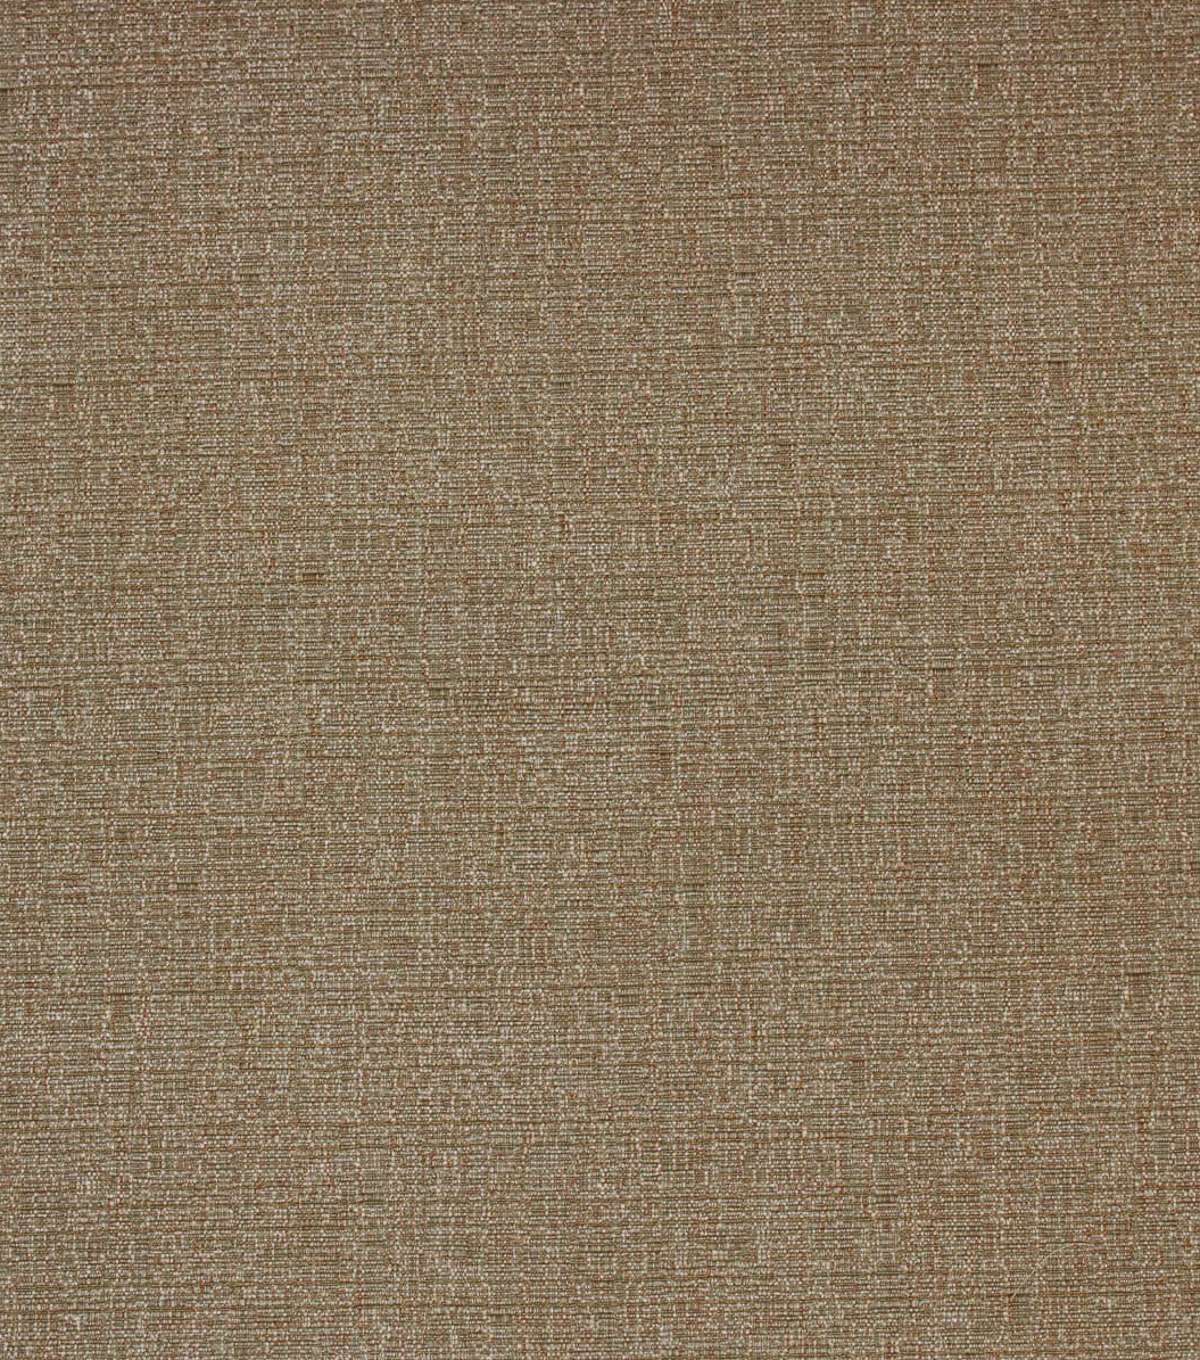 "Richloom Studio Upholstery Fabric 55""-Hightower/Aspen"